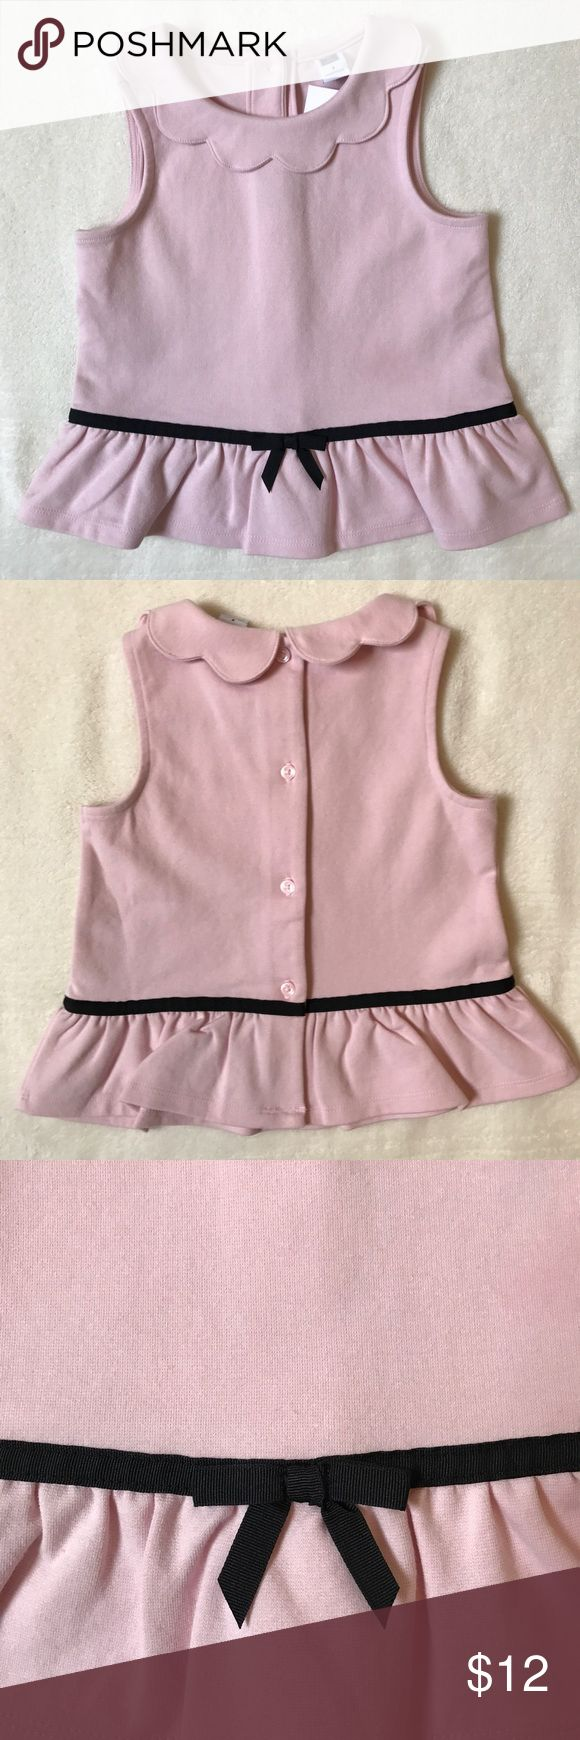 NWT Janie and Jack Pink Peplum Top Channel Audrey Hepburn in this classically adorable blush pink Peplum Top. Scalloped neck detail. Brand new with tags. Size 3T. Janie and Jack Shirts & Tops Blouses